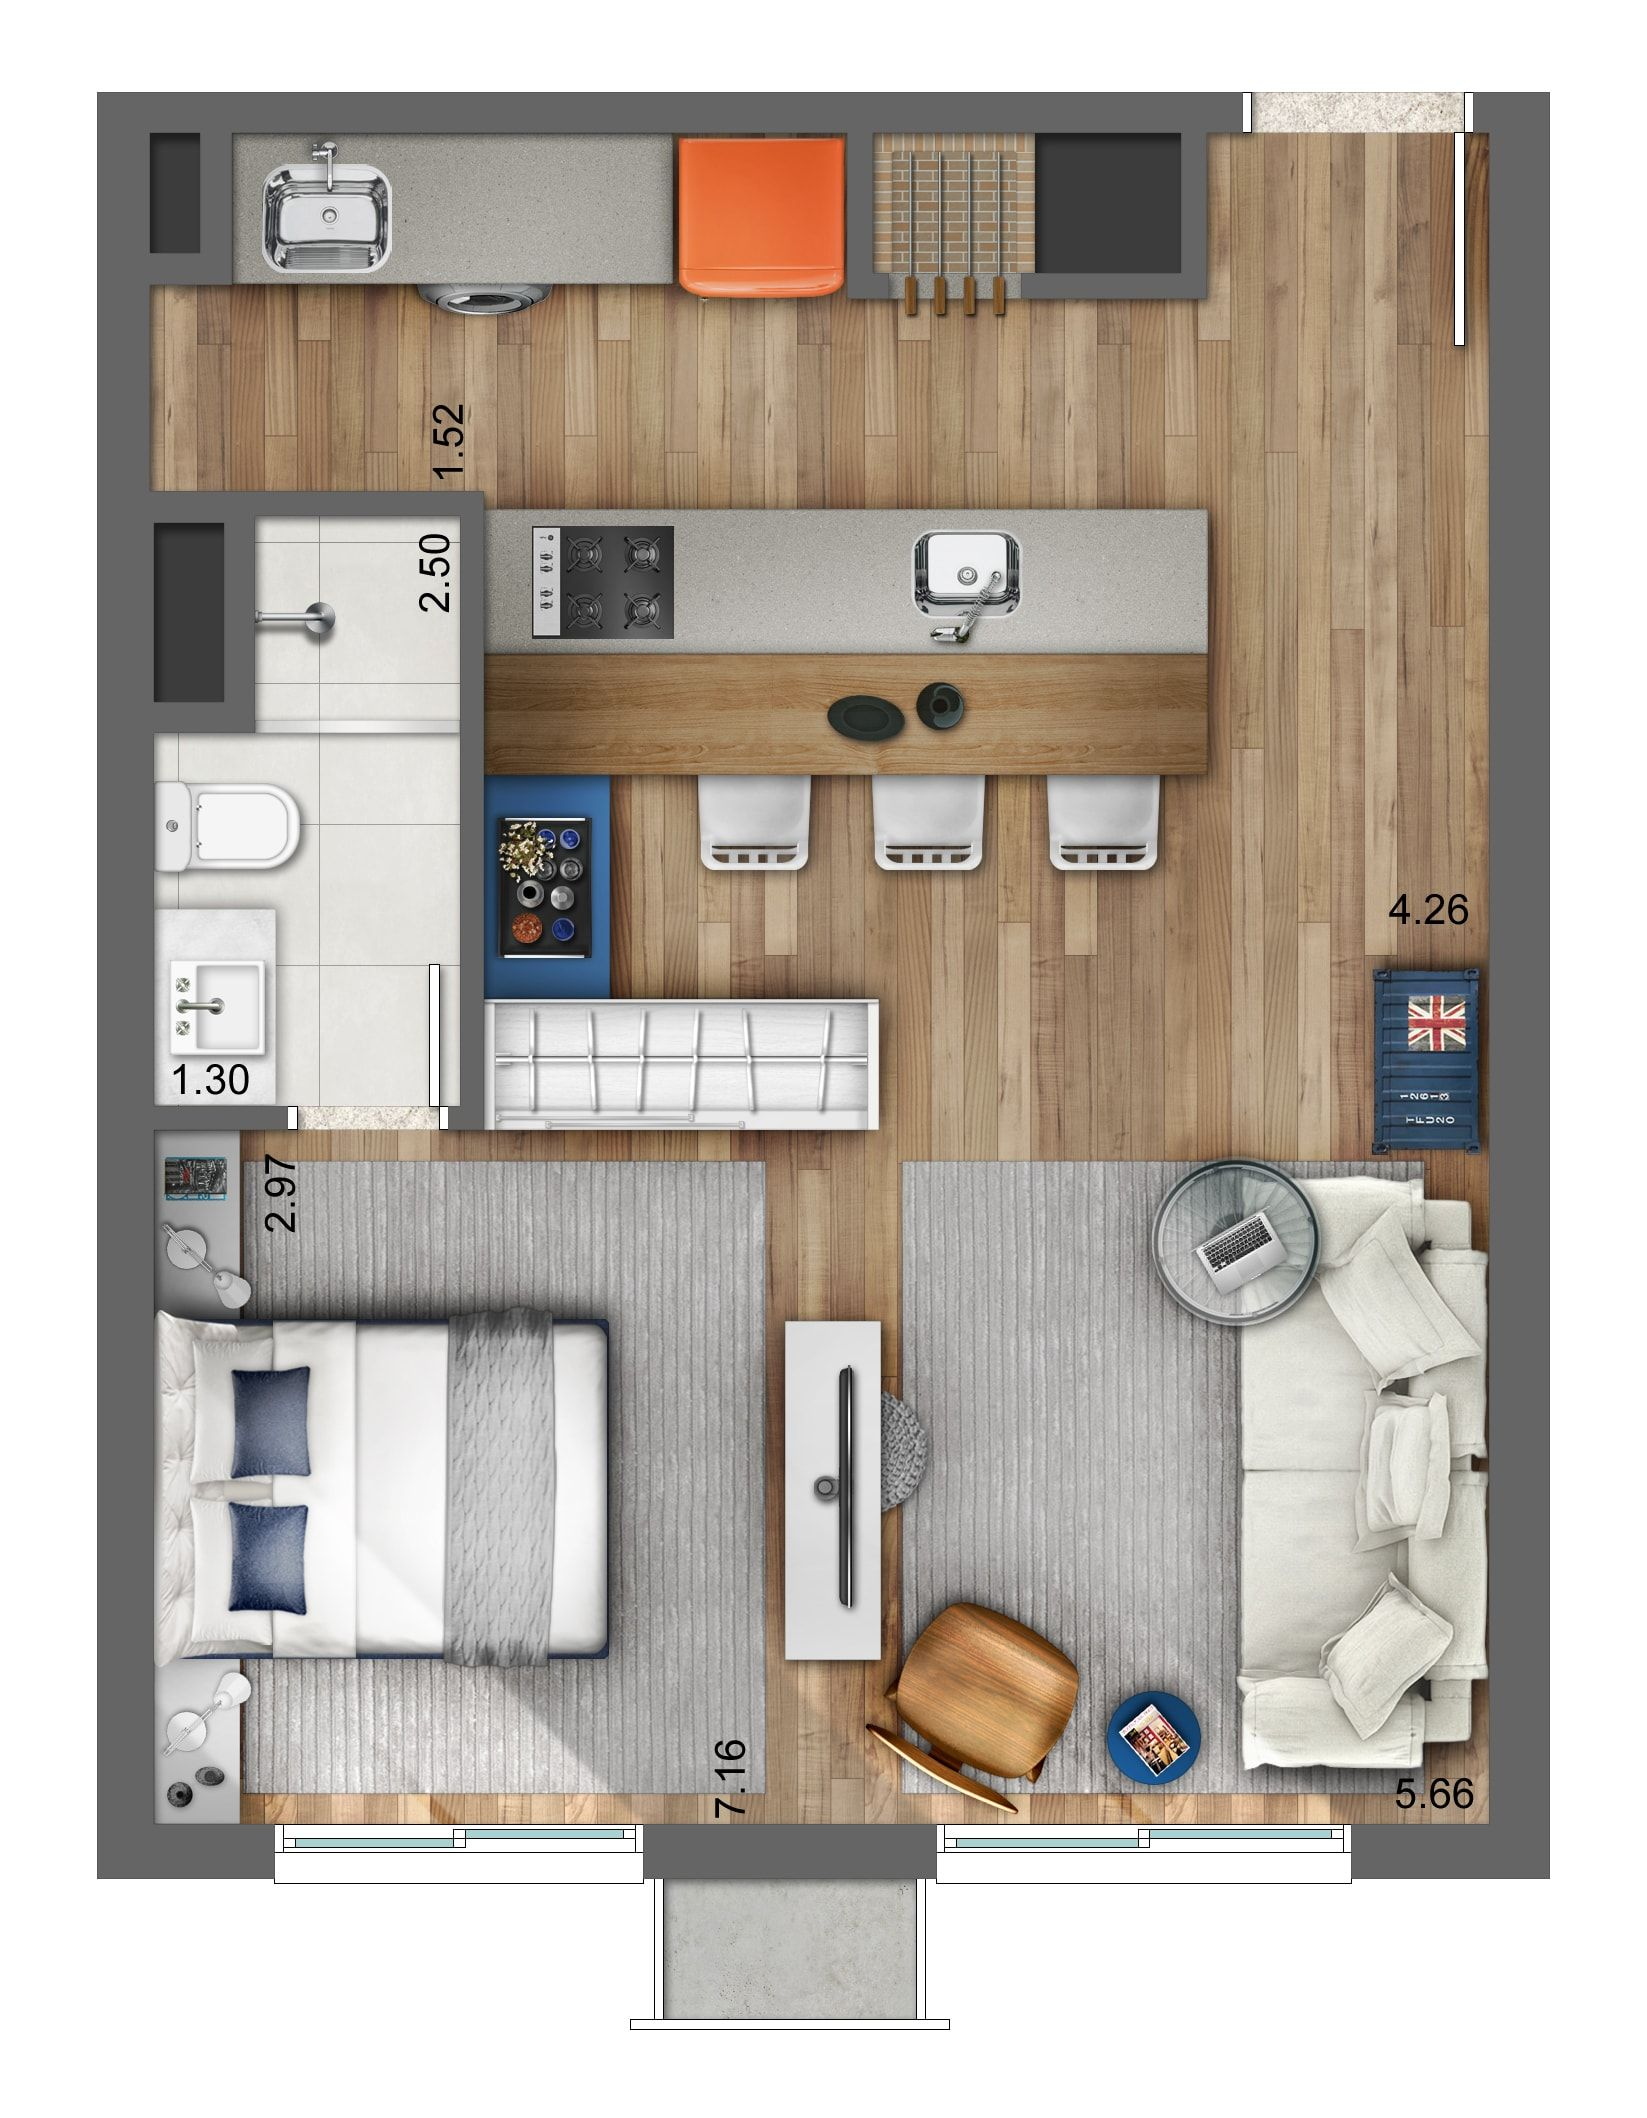 1 bedroom loft apartment  Smart u Artsy  qq  Pinterest  Artsy Tiny houses and House